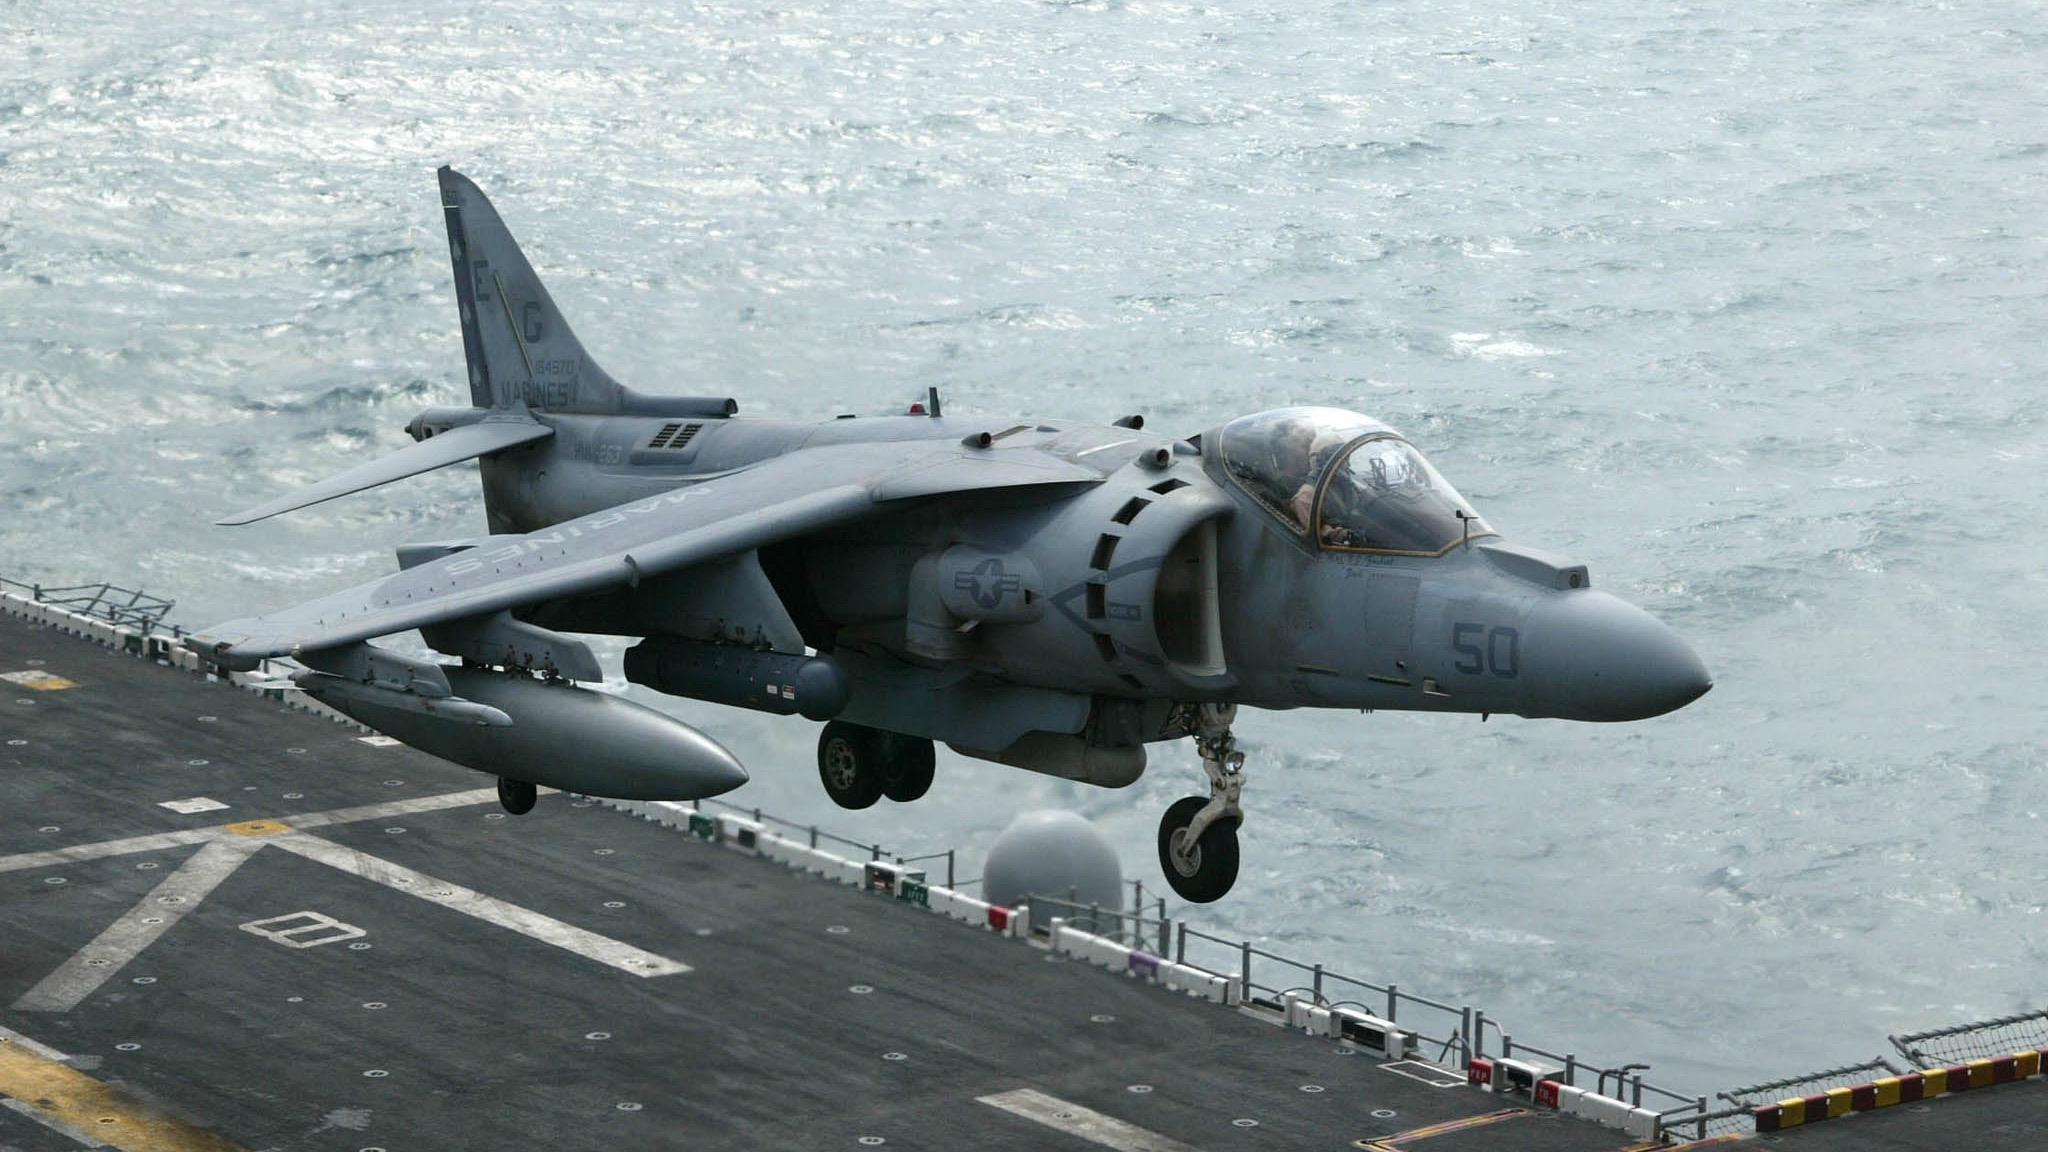 A Marine AV-8BII+ Harrier jump jet hovers at it prepares to land on the flight deck of the USS Nassau (LHA-4) in the Gulf, January 28, 2003. The USS Nassau is the main ship in an Amphibious Ready Group which includes the USS Austin and the USS Tortuga, all which transport 2,200 Marines, members of the 24th Marine Expeditionary Unit (MEU), operating in support of Operation Enduring Freedom. REUTERS/John Schults REUTERS  JES/FMS - RTRHCOS